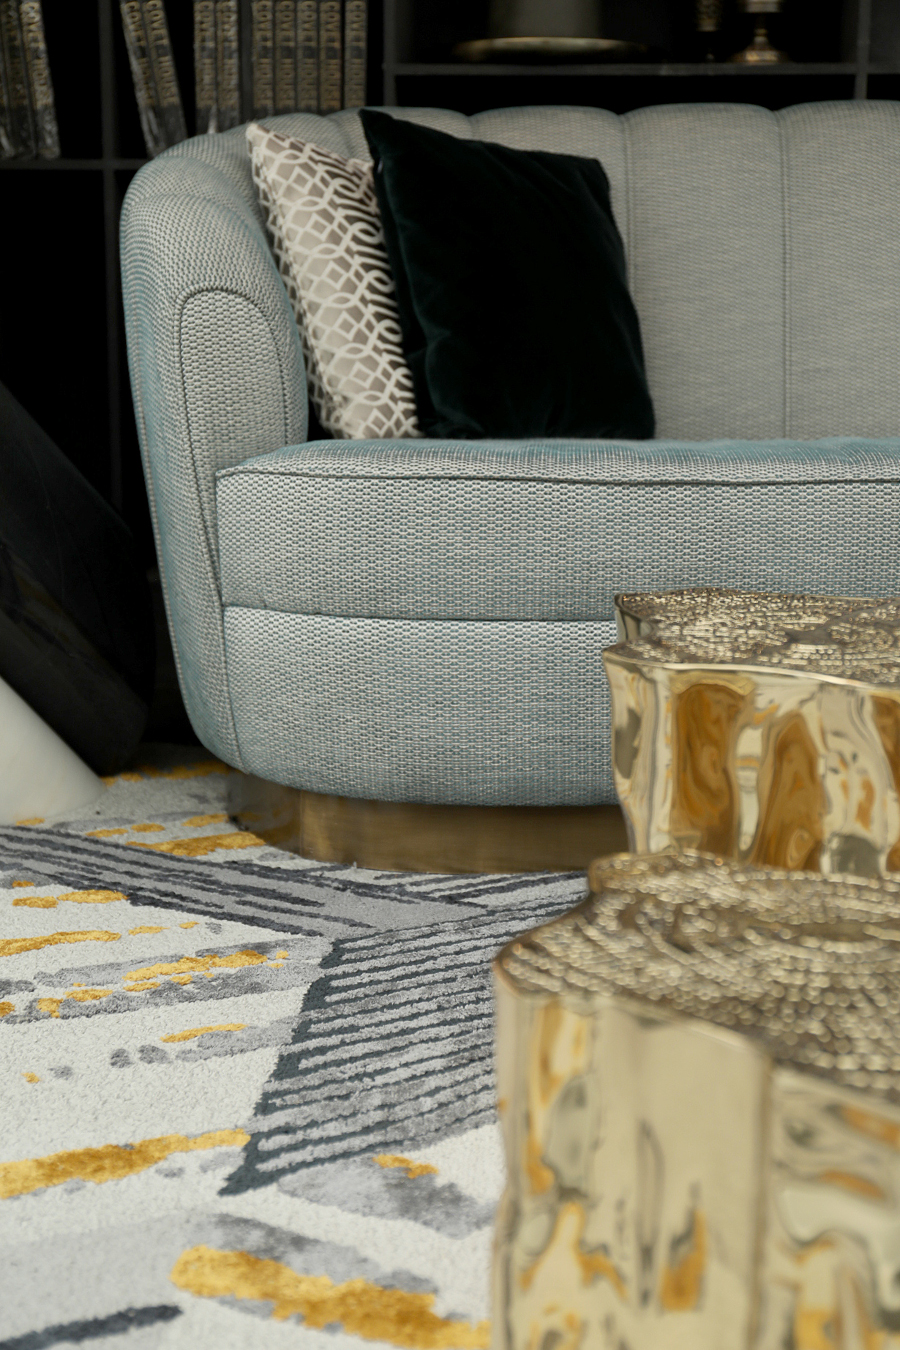 Decorex 2018 The Londoner Upholstery Fabric Trends For 2019 (2) upholstery fabric Decorex 2018: The Londoner Upholstery Fabric Trends For 2019 Decorex 2018 The Londoner Upholstery Fabric Trends For 2019 6